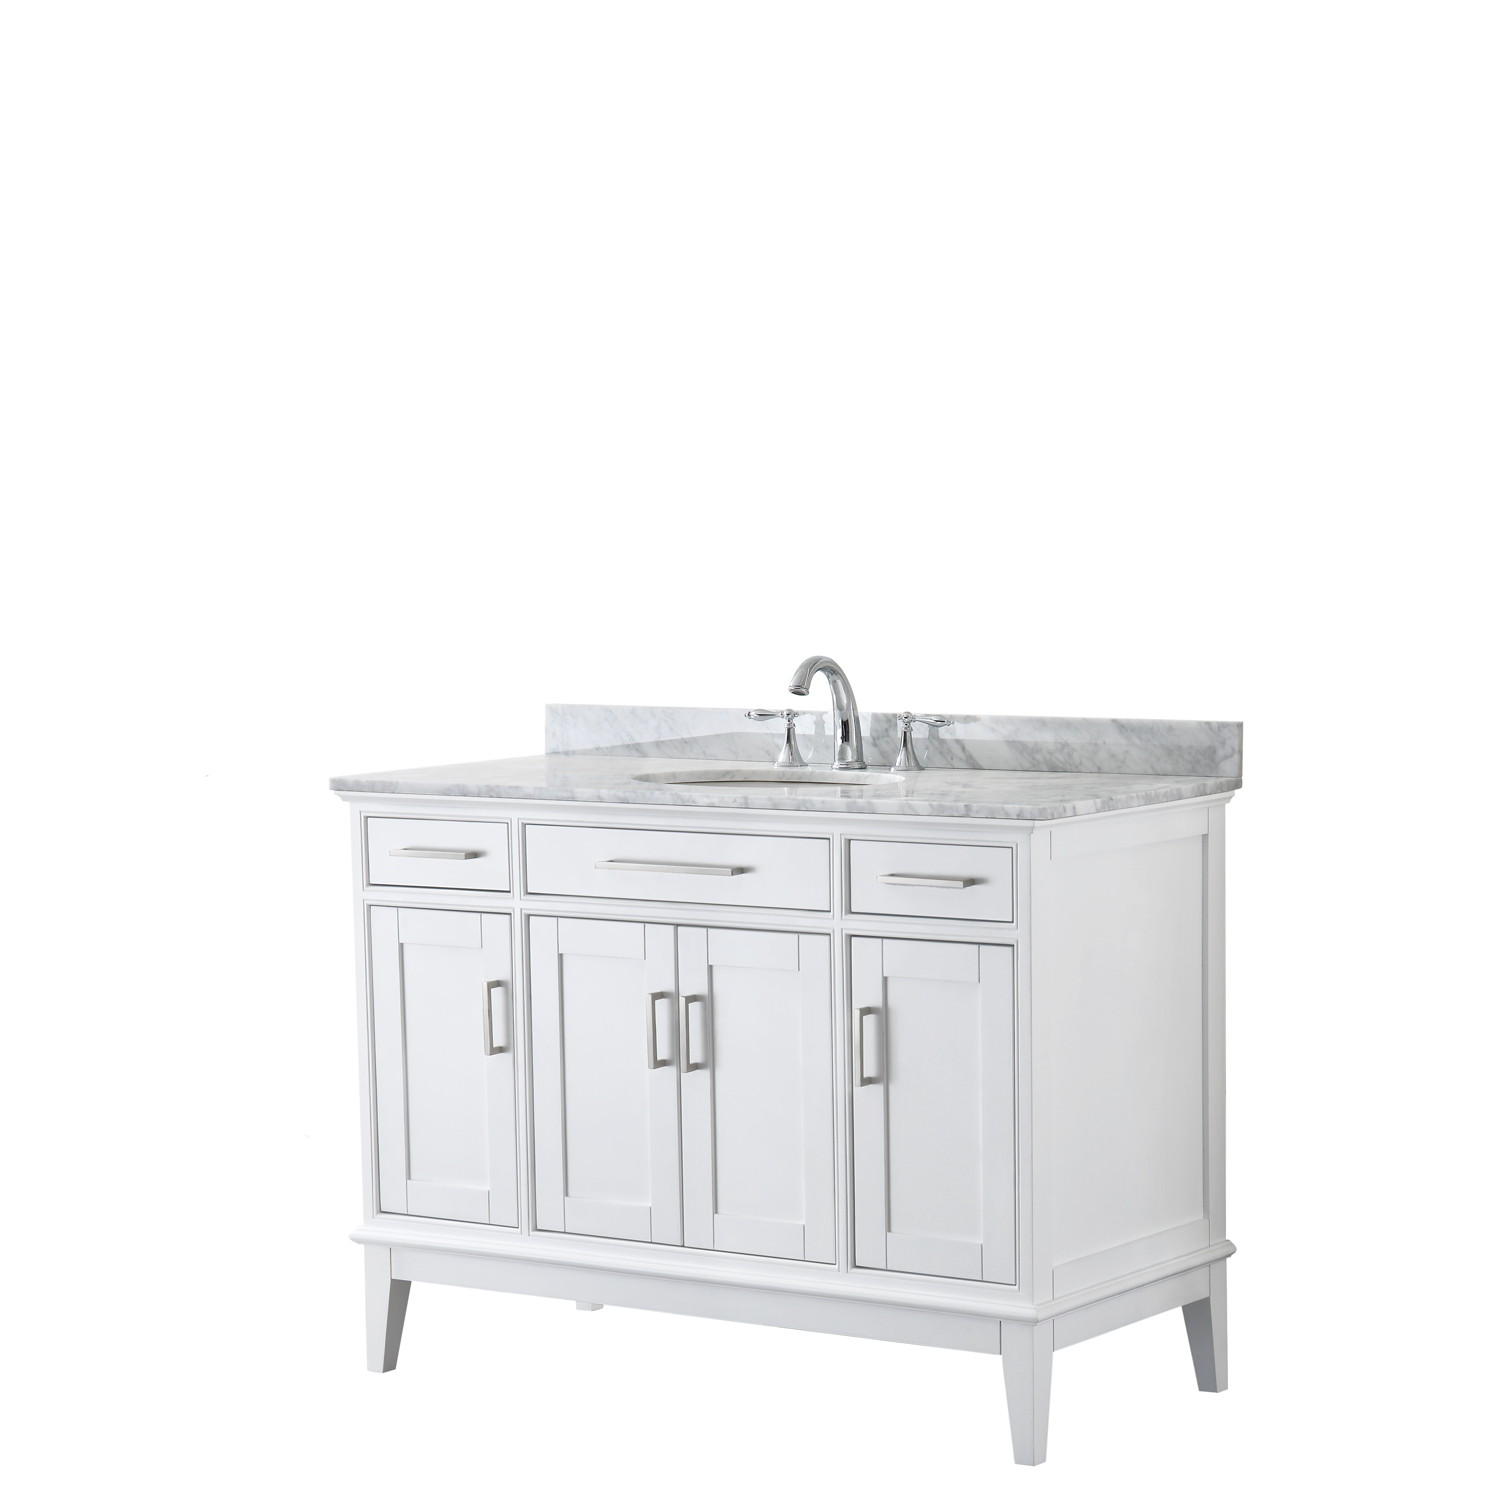 "Contemporary 48"" Single Bathroom Vanity in White, White Carrara Marble Countertop with Undermount Sink, and Mirror Options"